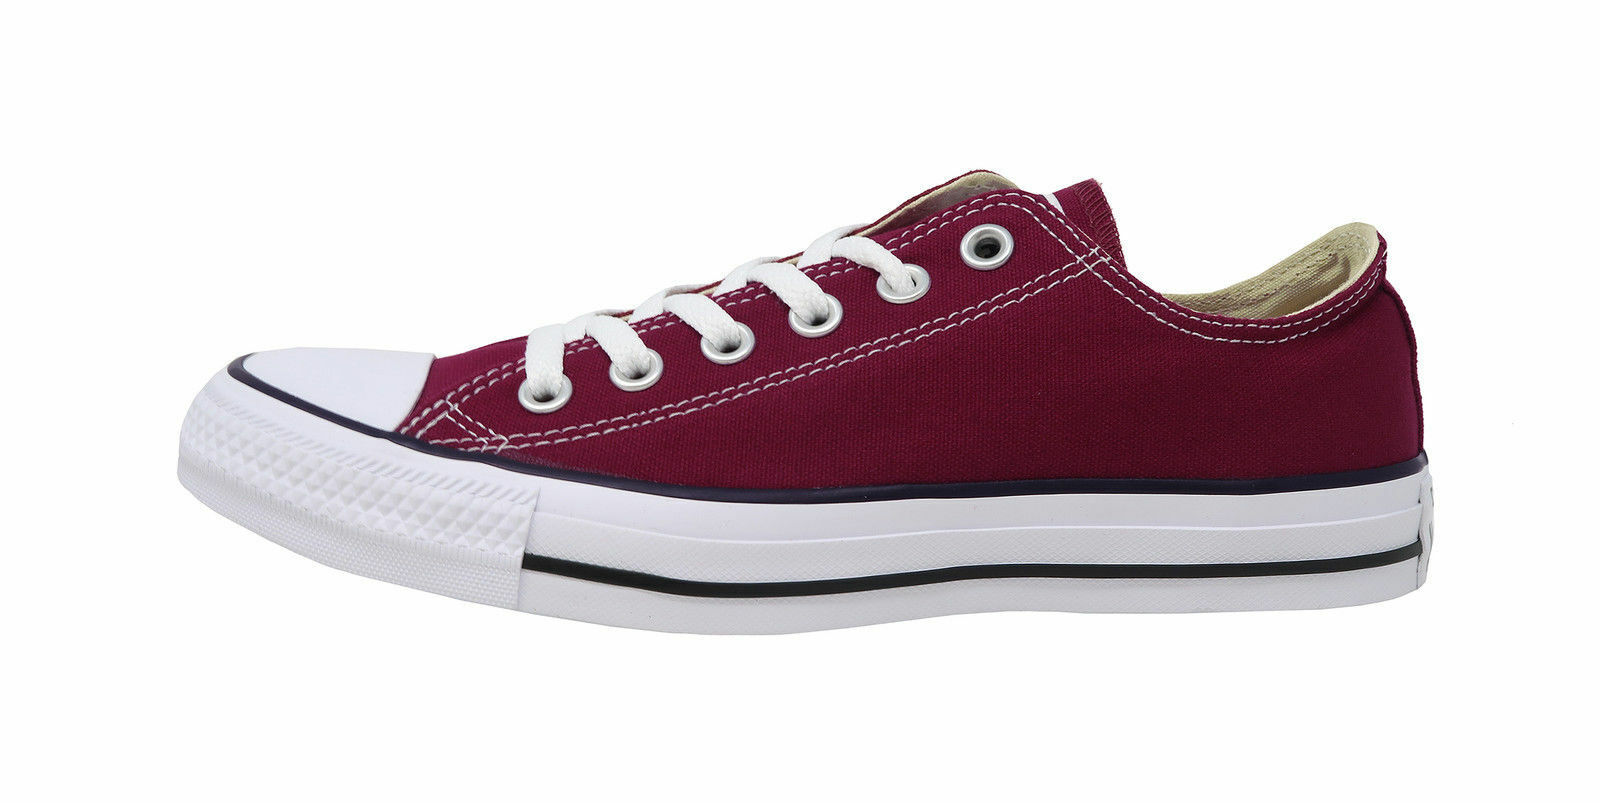 Converse Chuck Taylor Canvas Unisex Low Top 139794F Burgundy Free Shipping